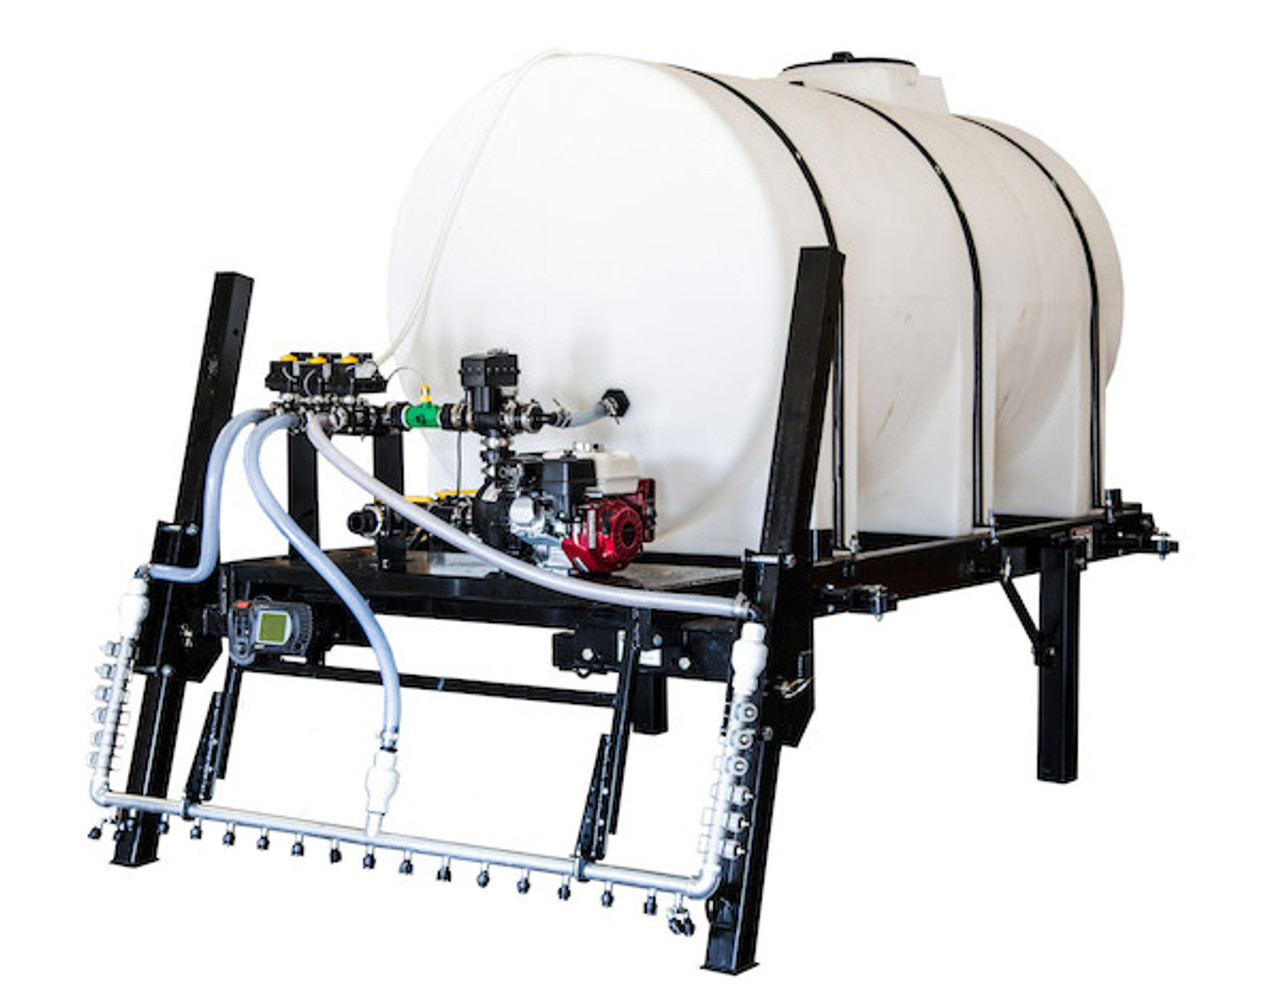 6191631 BUYERS SALTDOGG 1750 Gallon Gas-Powered Anti-Ice System With One-Lane Spray Bar With Automatic Application Rate Control